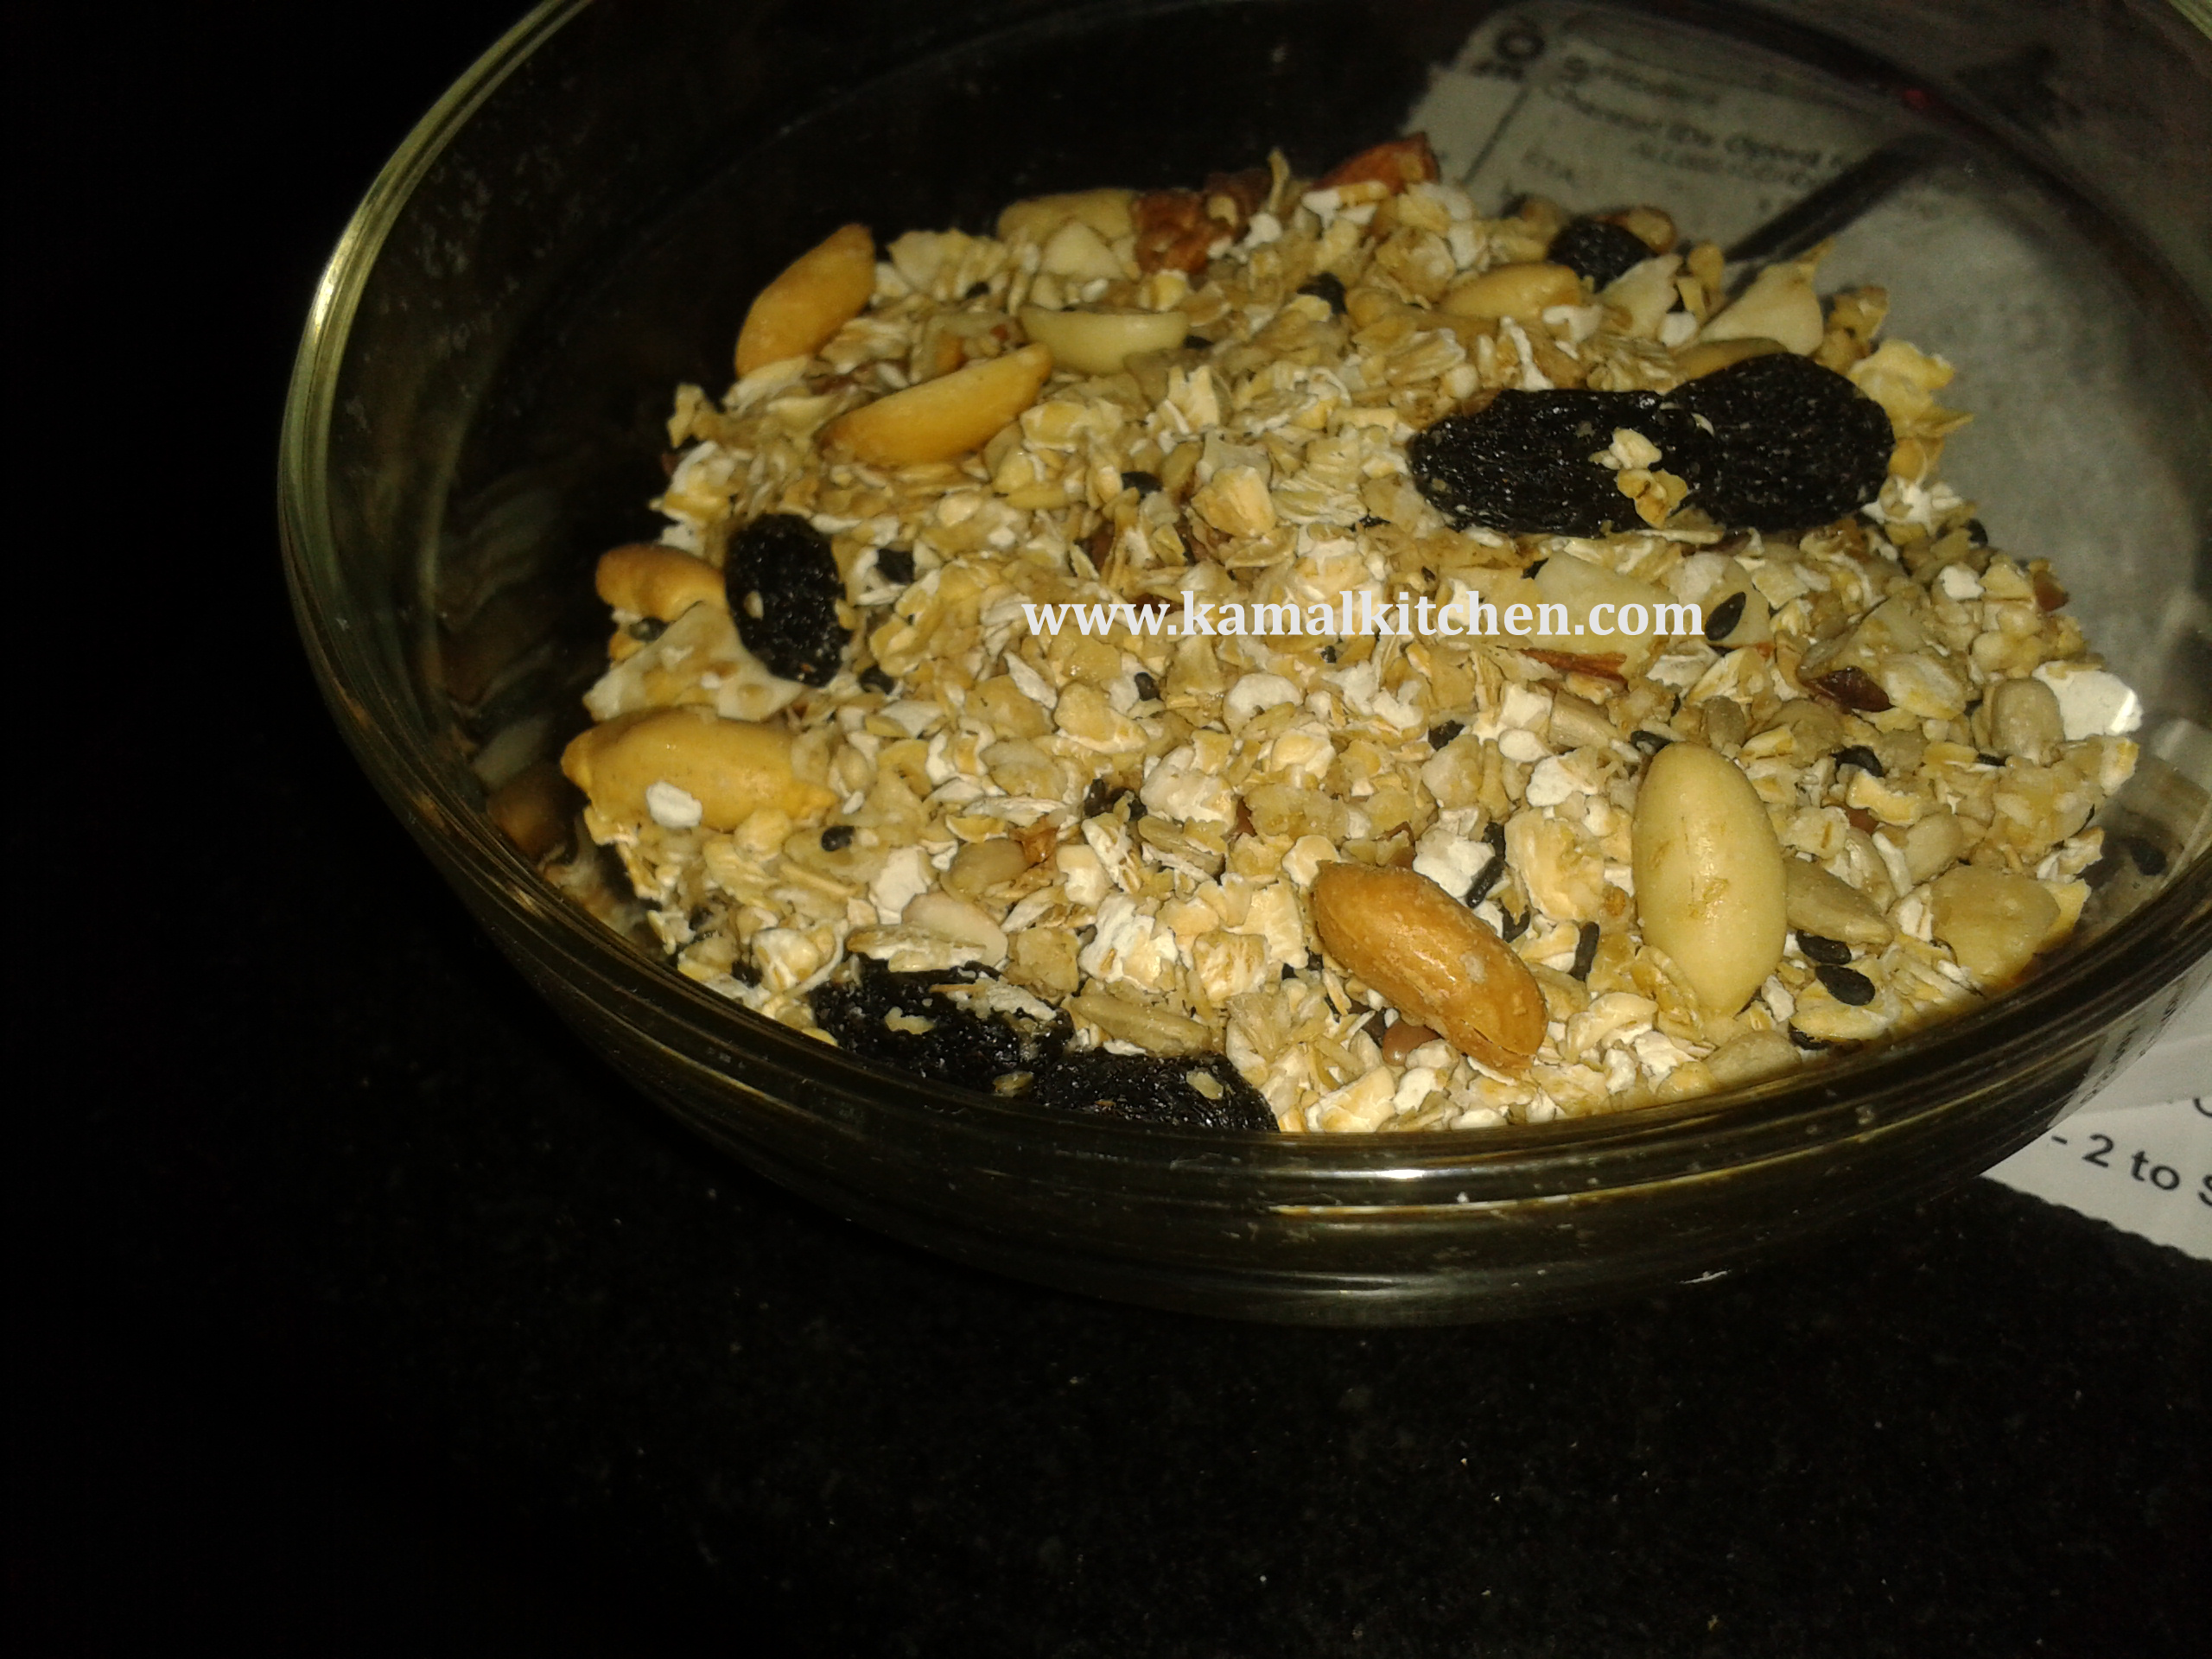 Homemade Honey Nut Granola or Muesli Recipe